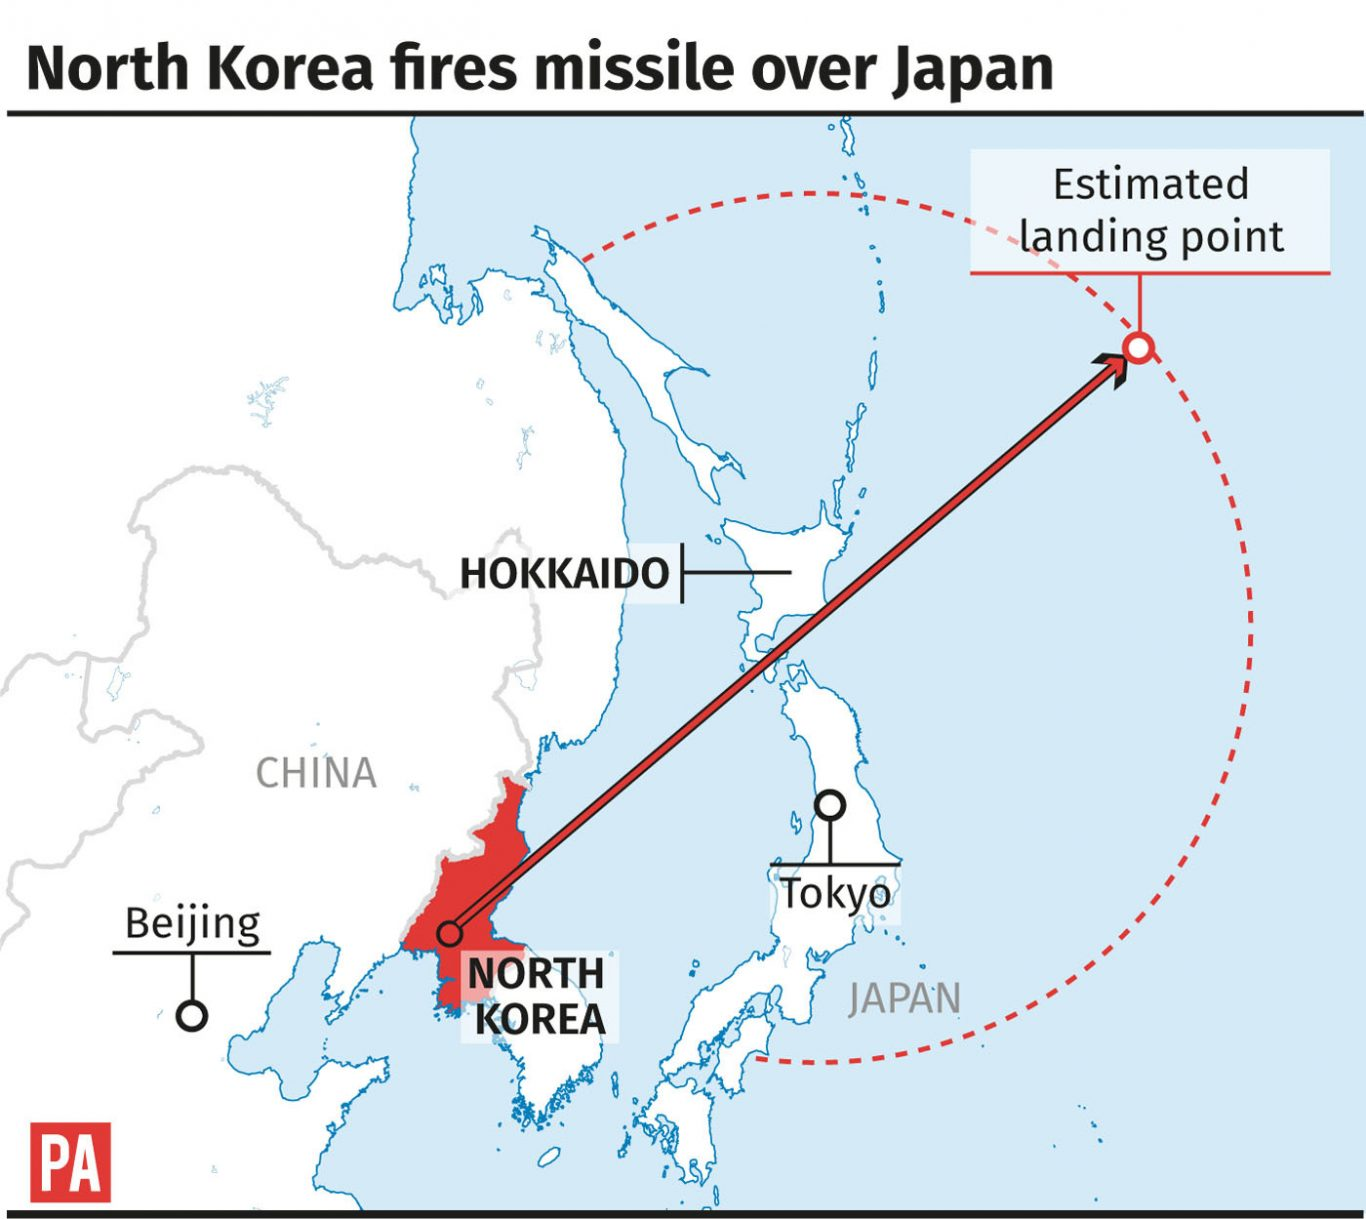 Alarm in Japan over 'provocation'